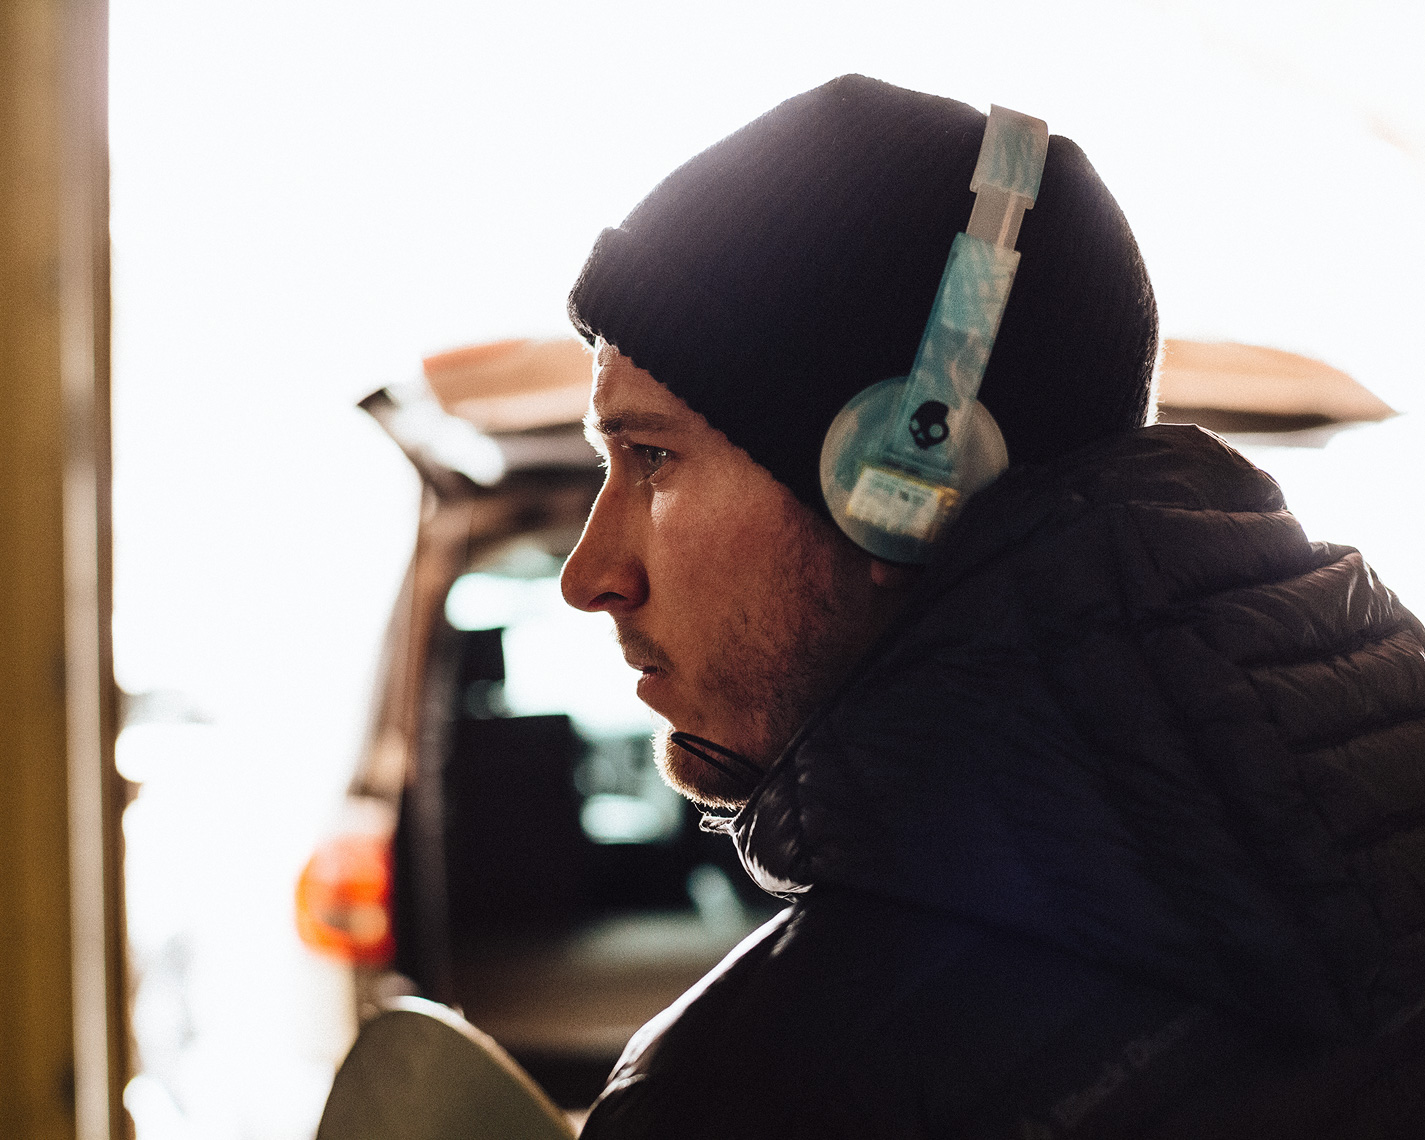 Aaron Bittner. Shot for Skullcandy.